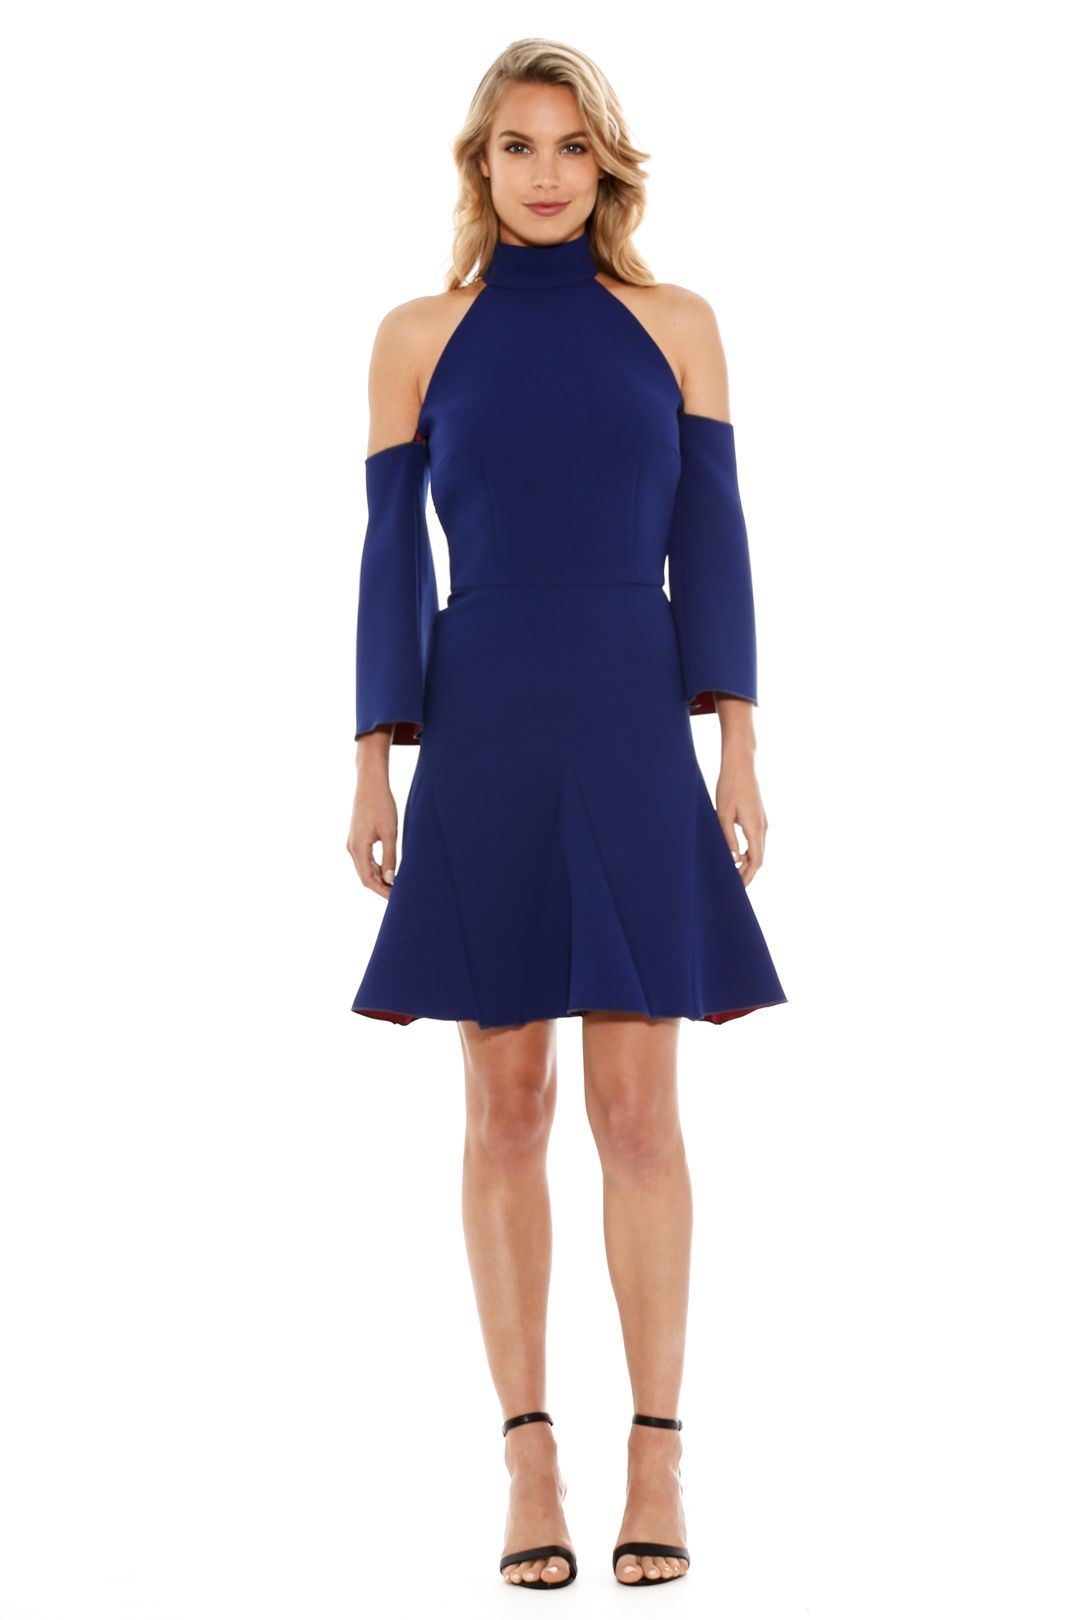 Yeojin Bae - Double Crepe Nadine Godet Dress - Blue - Front